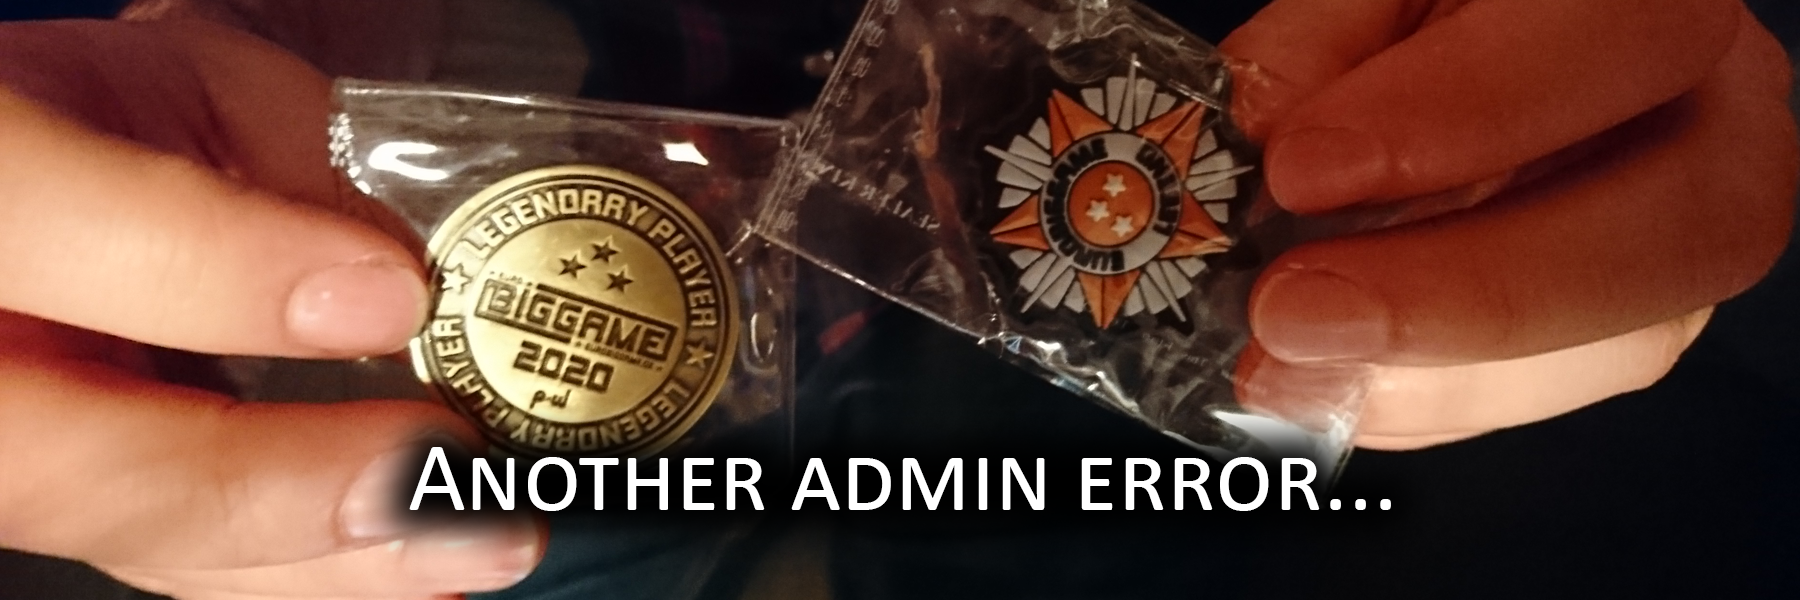 Another admin error...